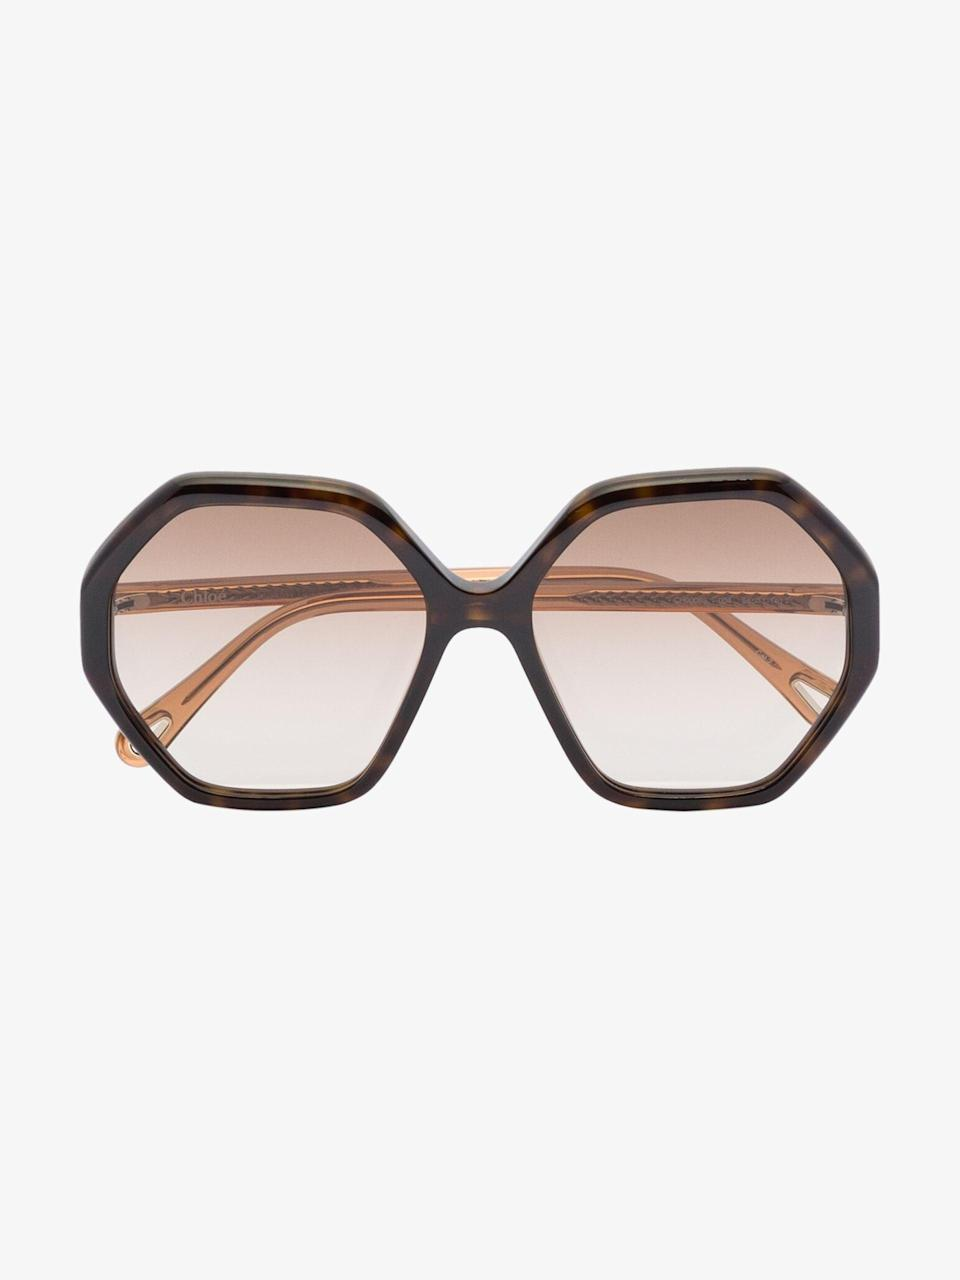 """<br><br><strong>Chloé Eyewear</strong> Brown Esther Hexagonal Sunglasses, $, available at <a href=""""https://go.skimresources.com/?id=30283X879131&url=https%3A%2F%2Fwww.brownsfashion.com%2Fshopping%2Fchloe-eyewear-brown-esther-hexagonal-sunglasses-16330876"""" rel=""""nofollow noopener"""" target=""""_blank"""" data-ylk=""""slk:Browns"""" class=""""link rapid-noclick-resp"""">Browns</a>"""